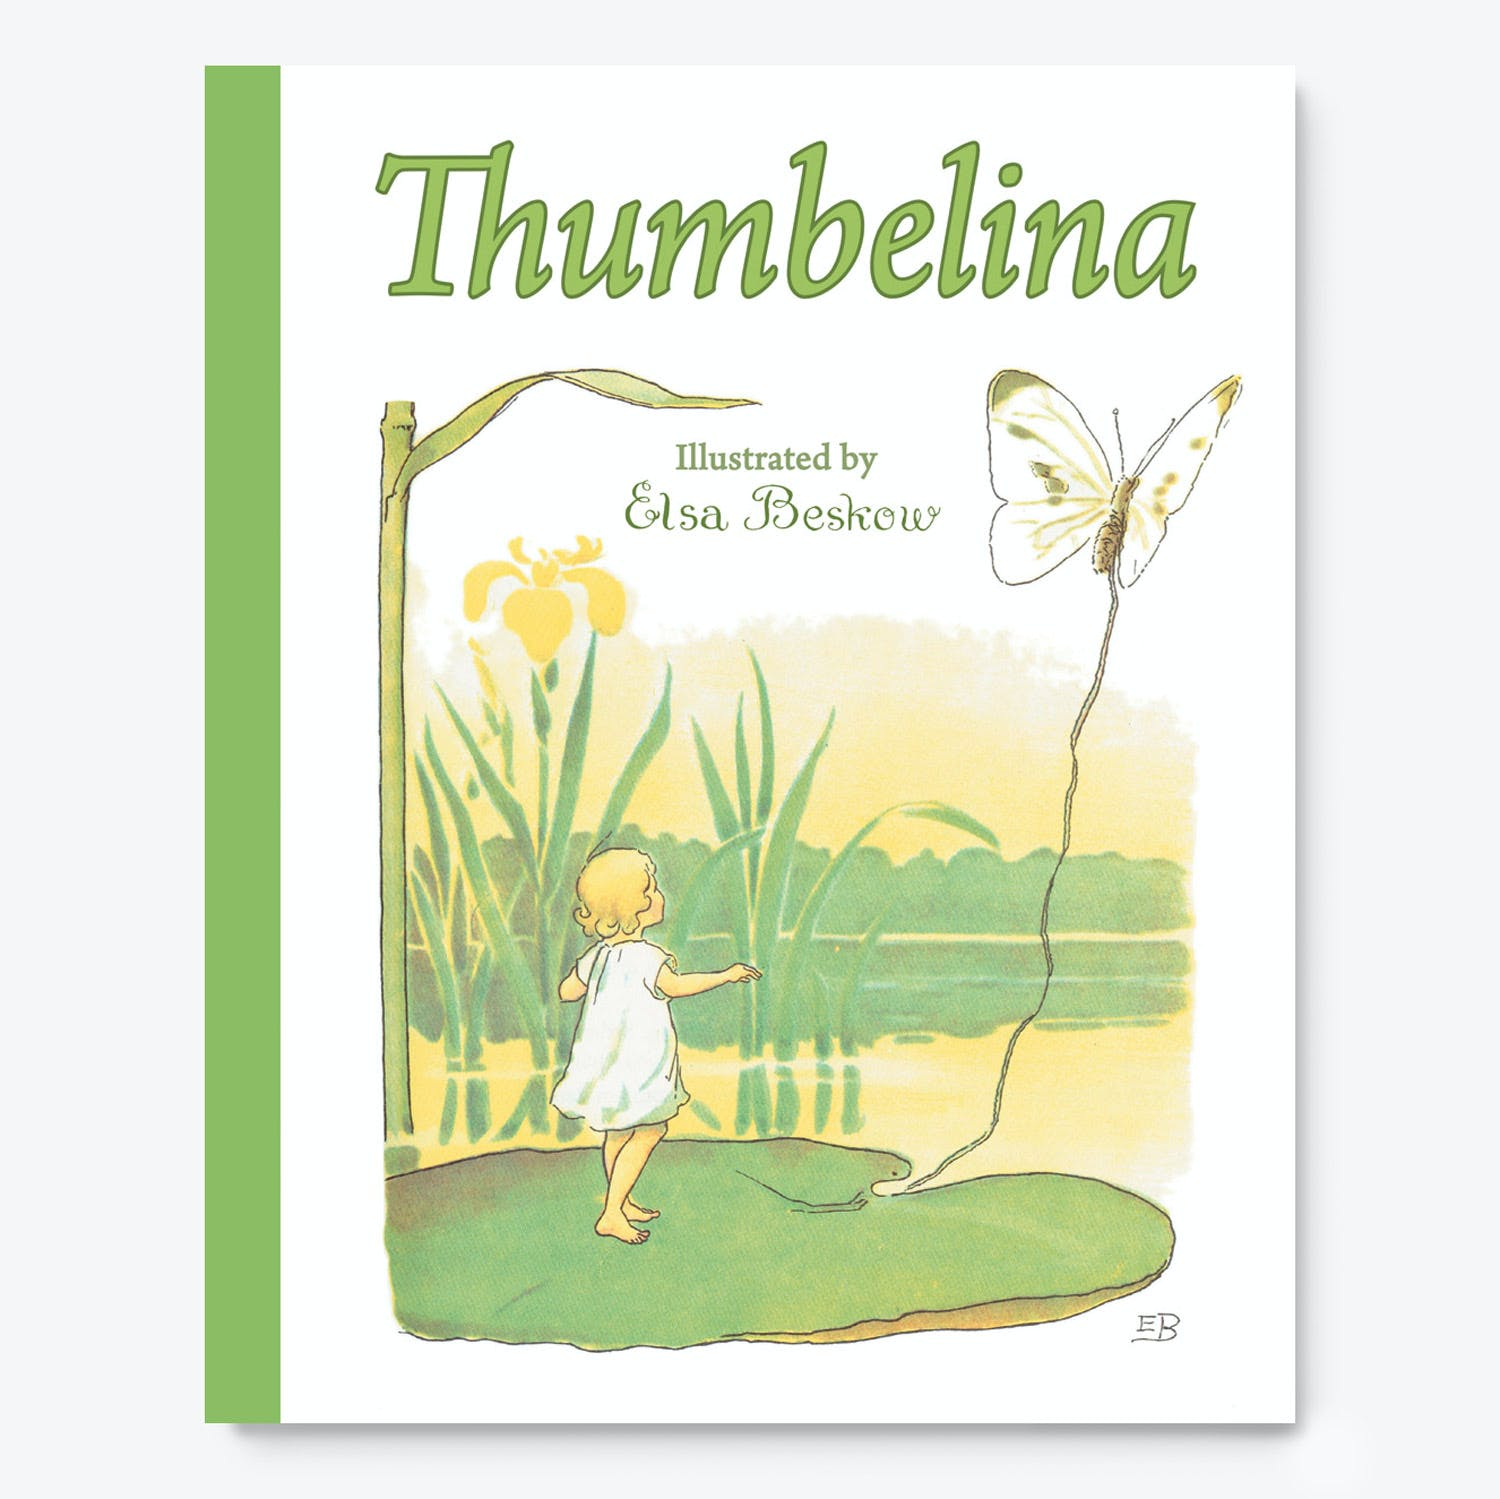 Thumbelina Illustrated by Elsa Beskow